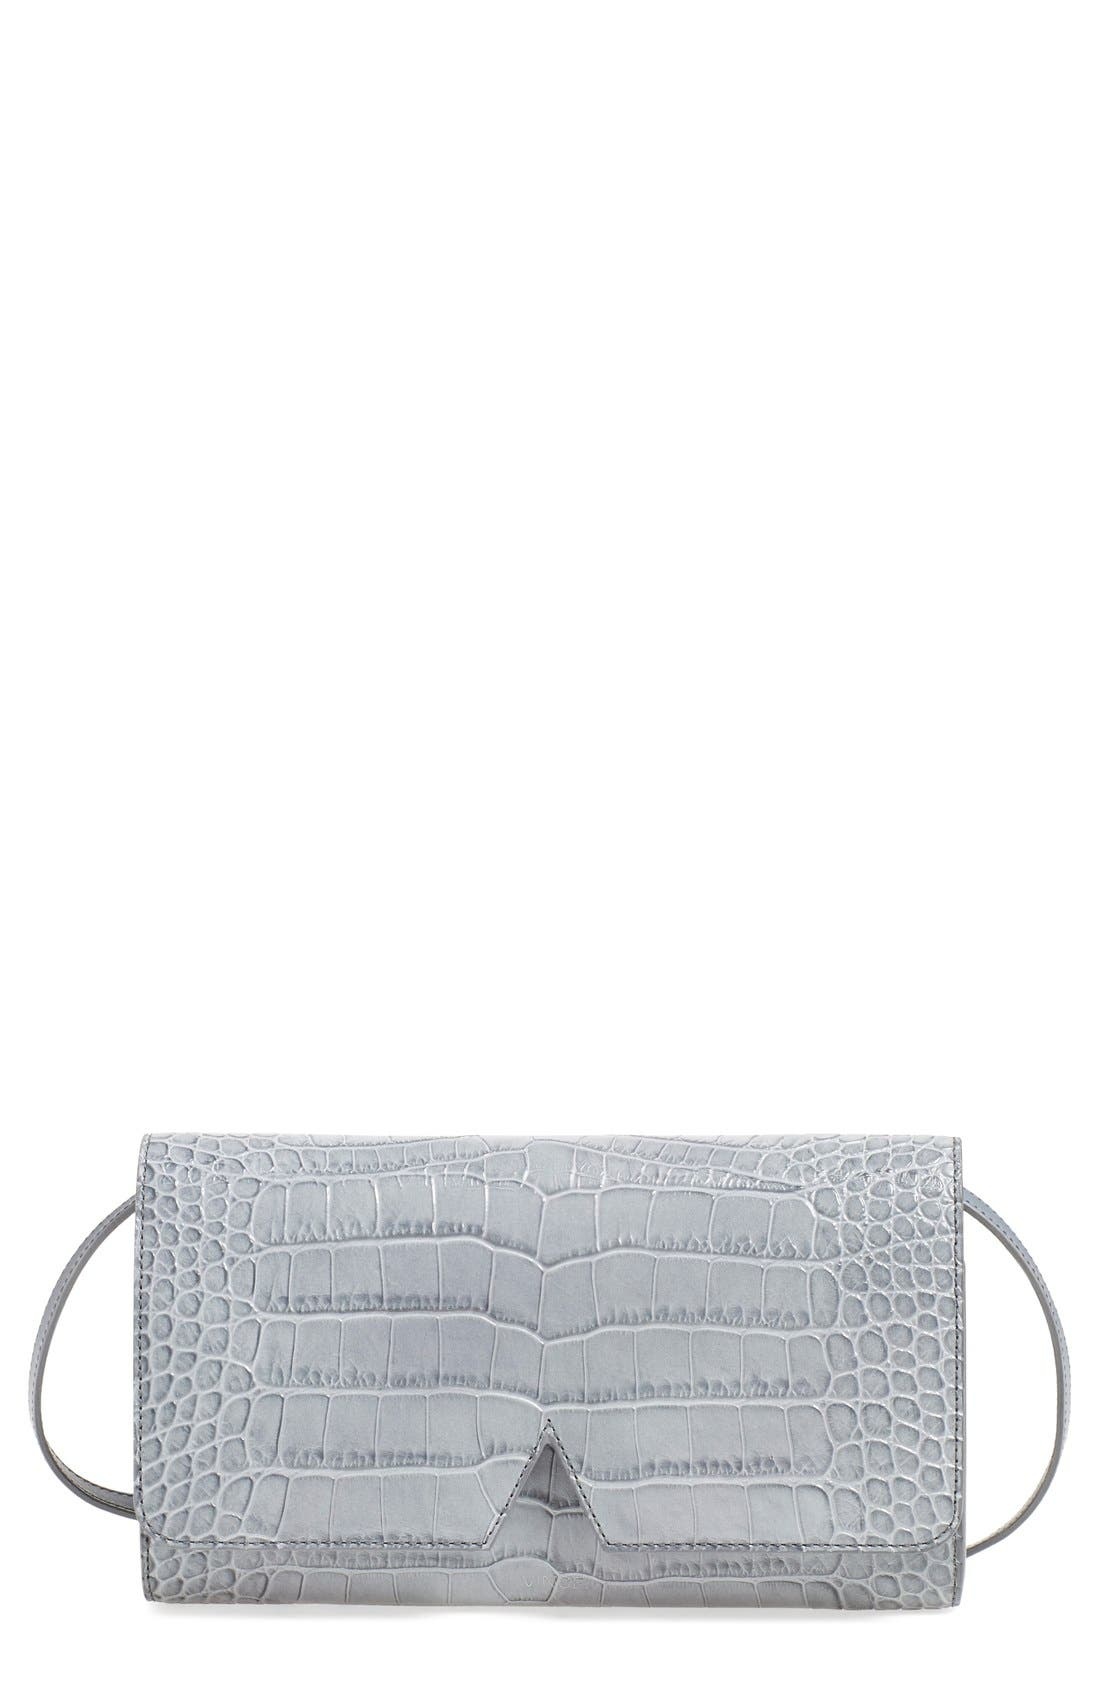 Alternate Image 1 Selected - VinceCrocEmbossed Convertible Clutch